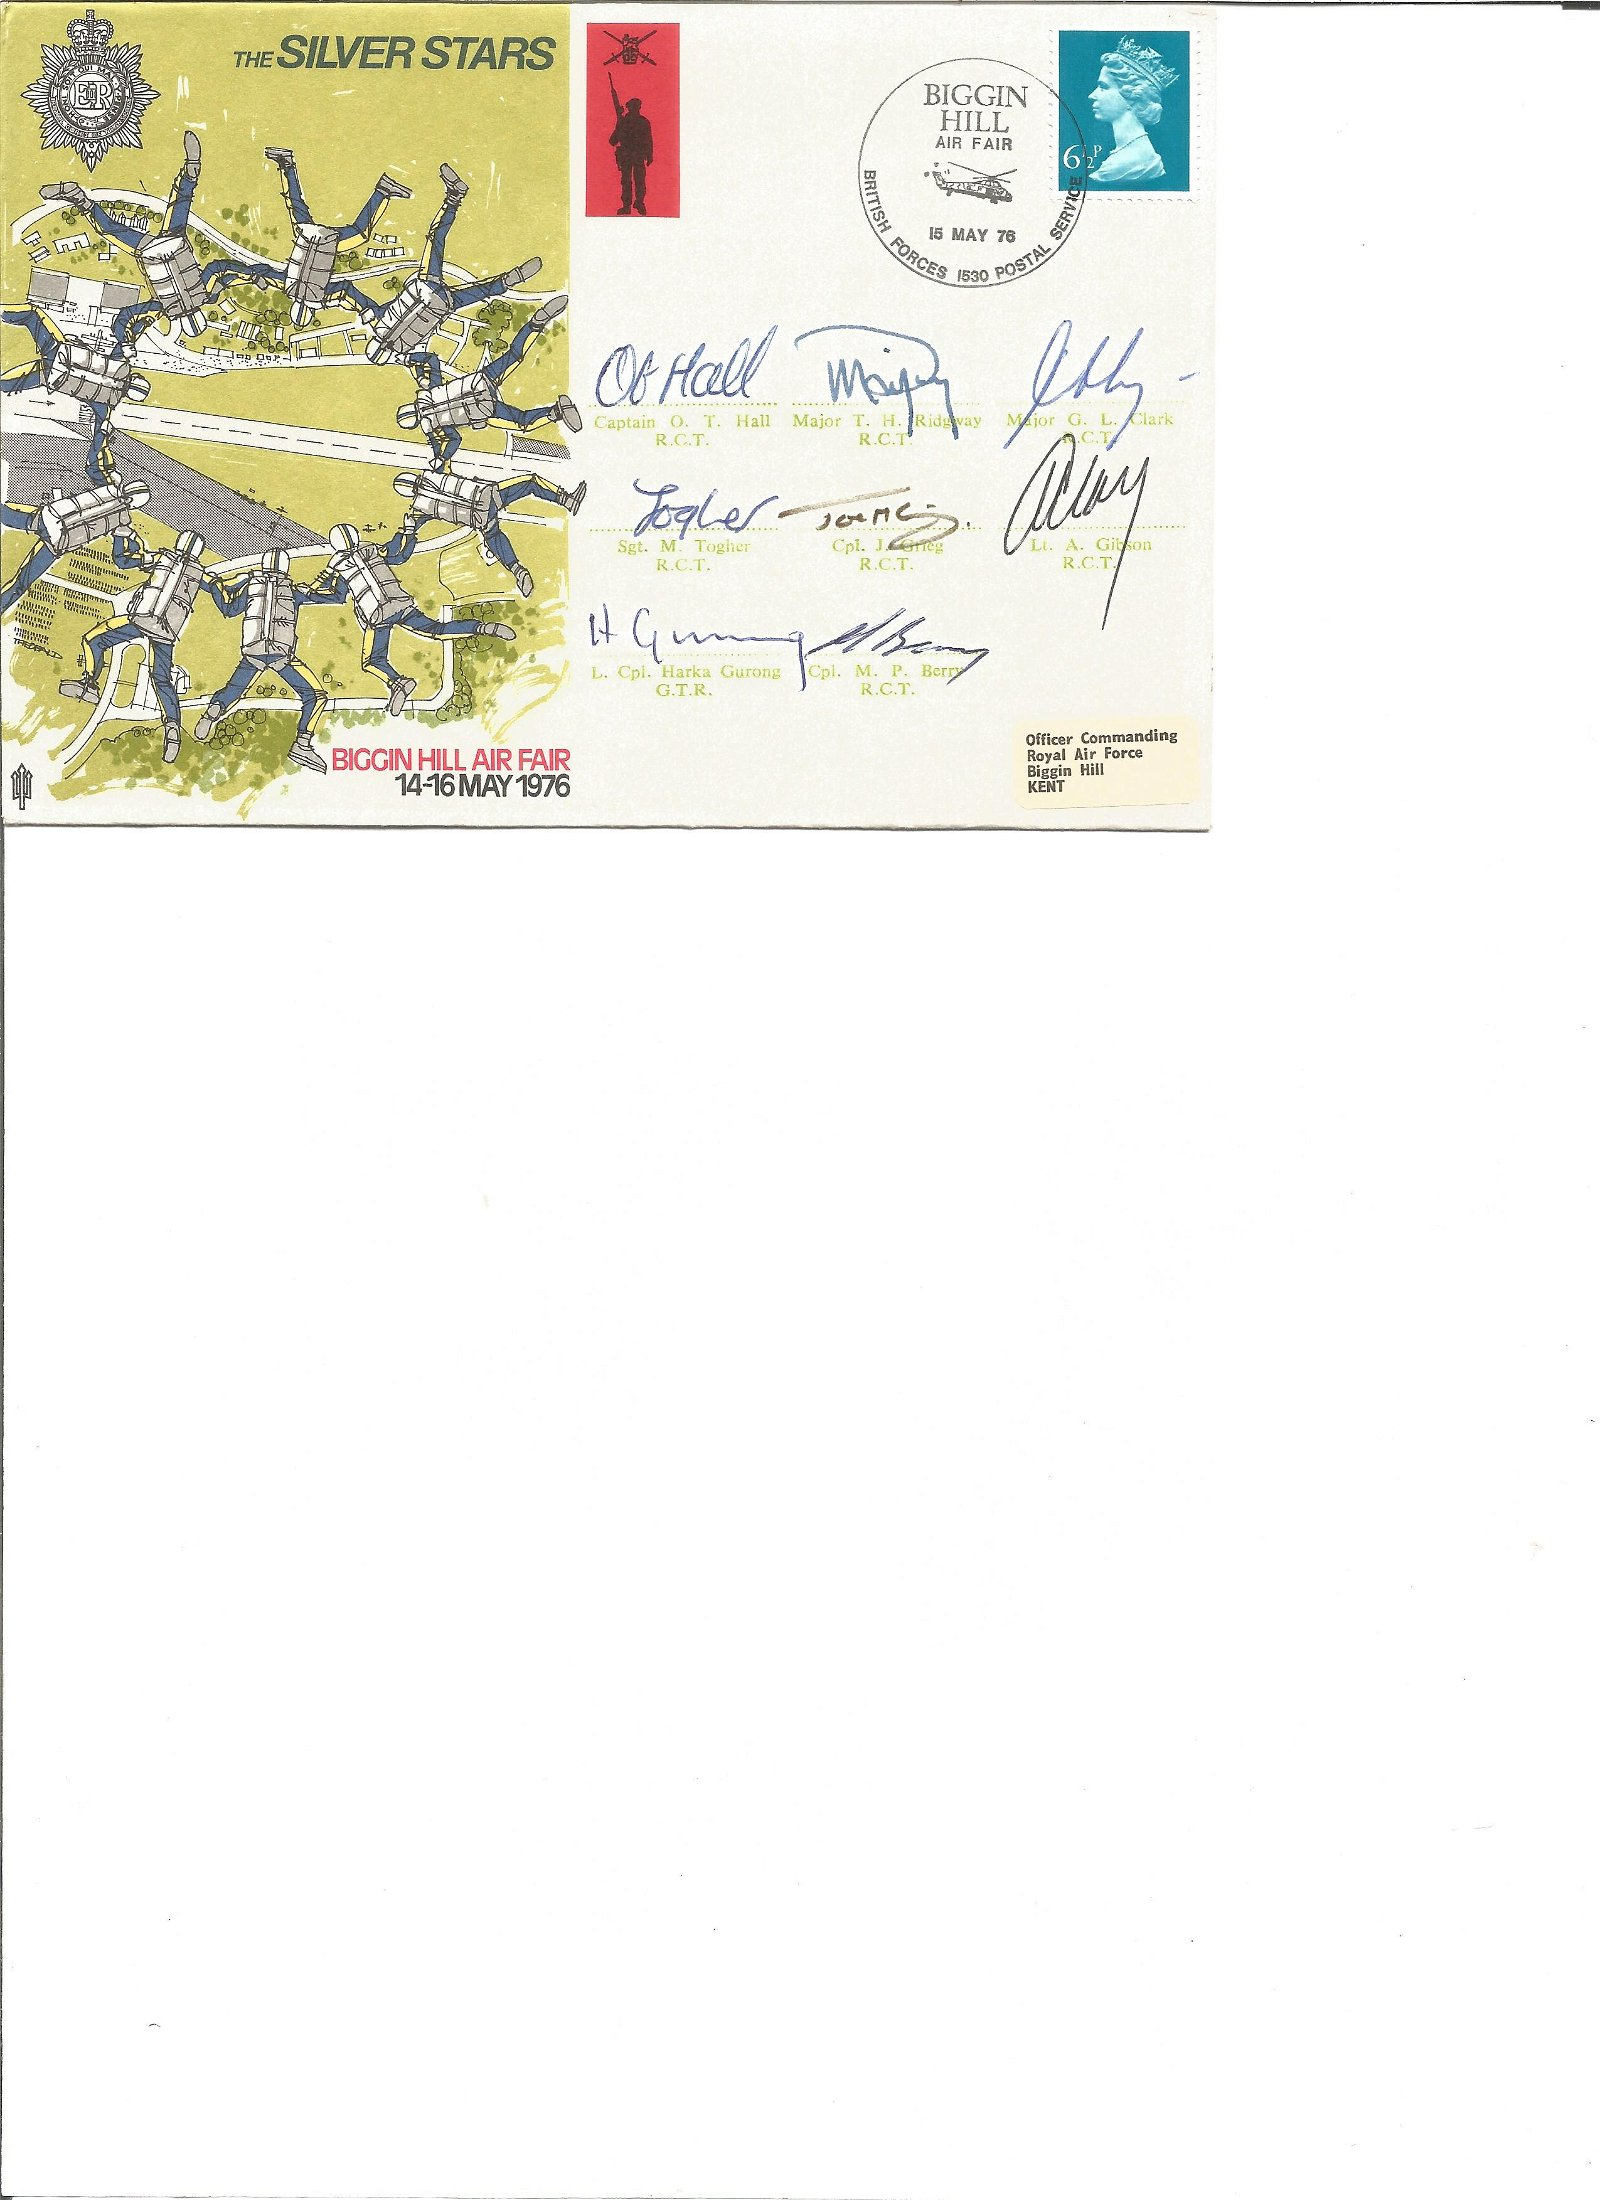 The Silver Stars cover signed by 9 including, Hall,